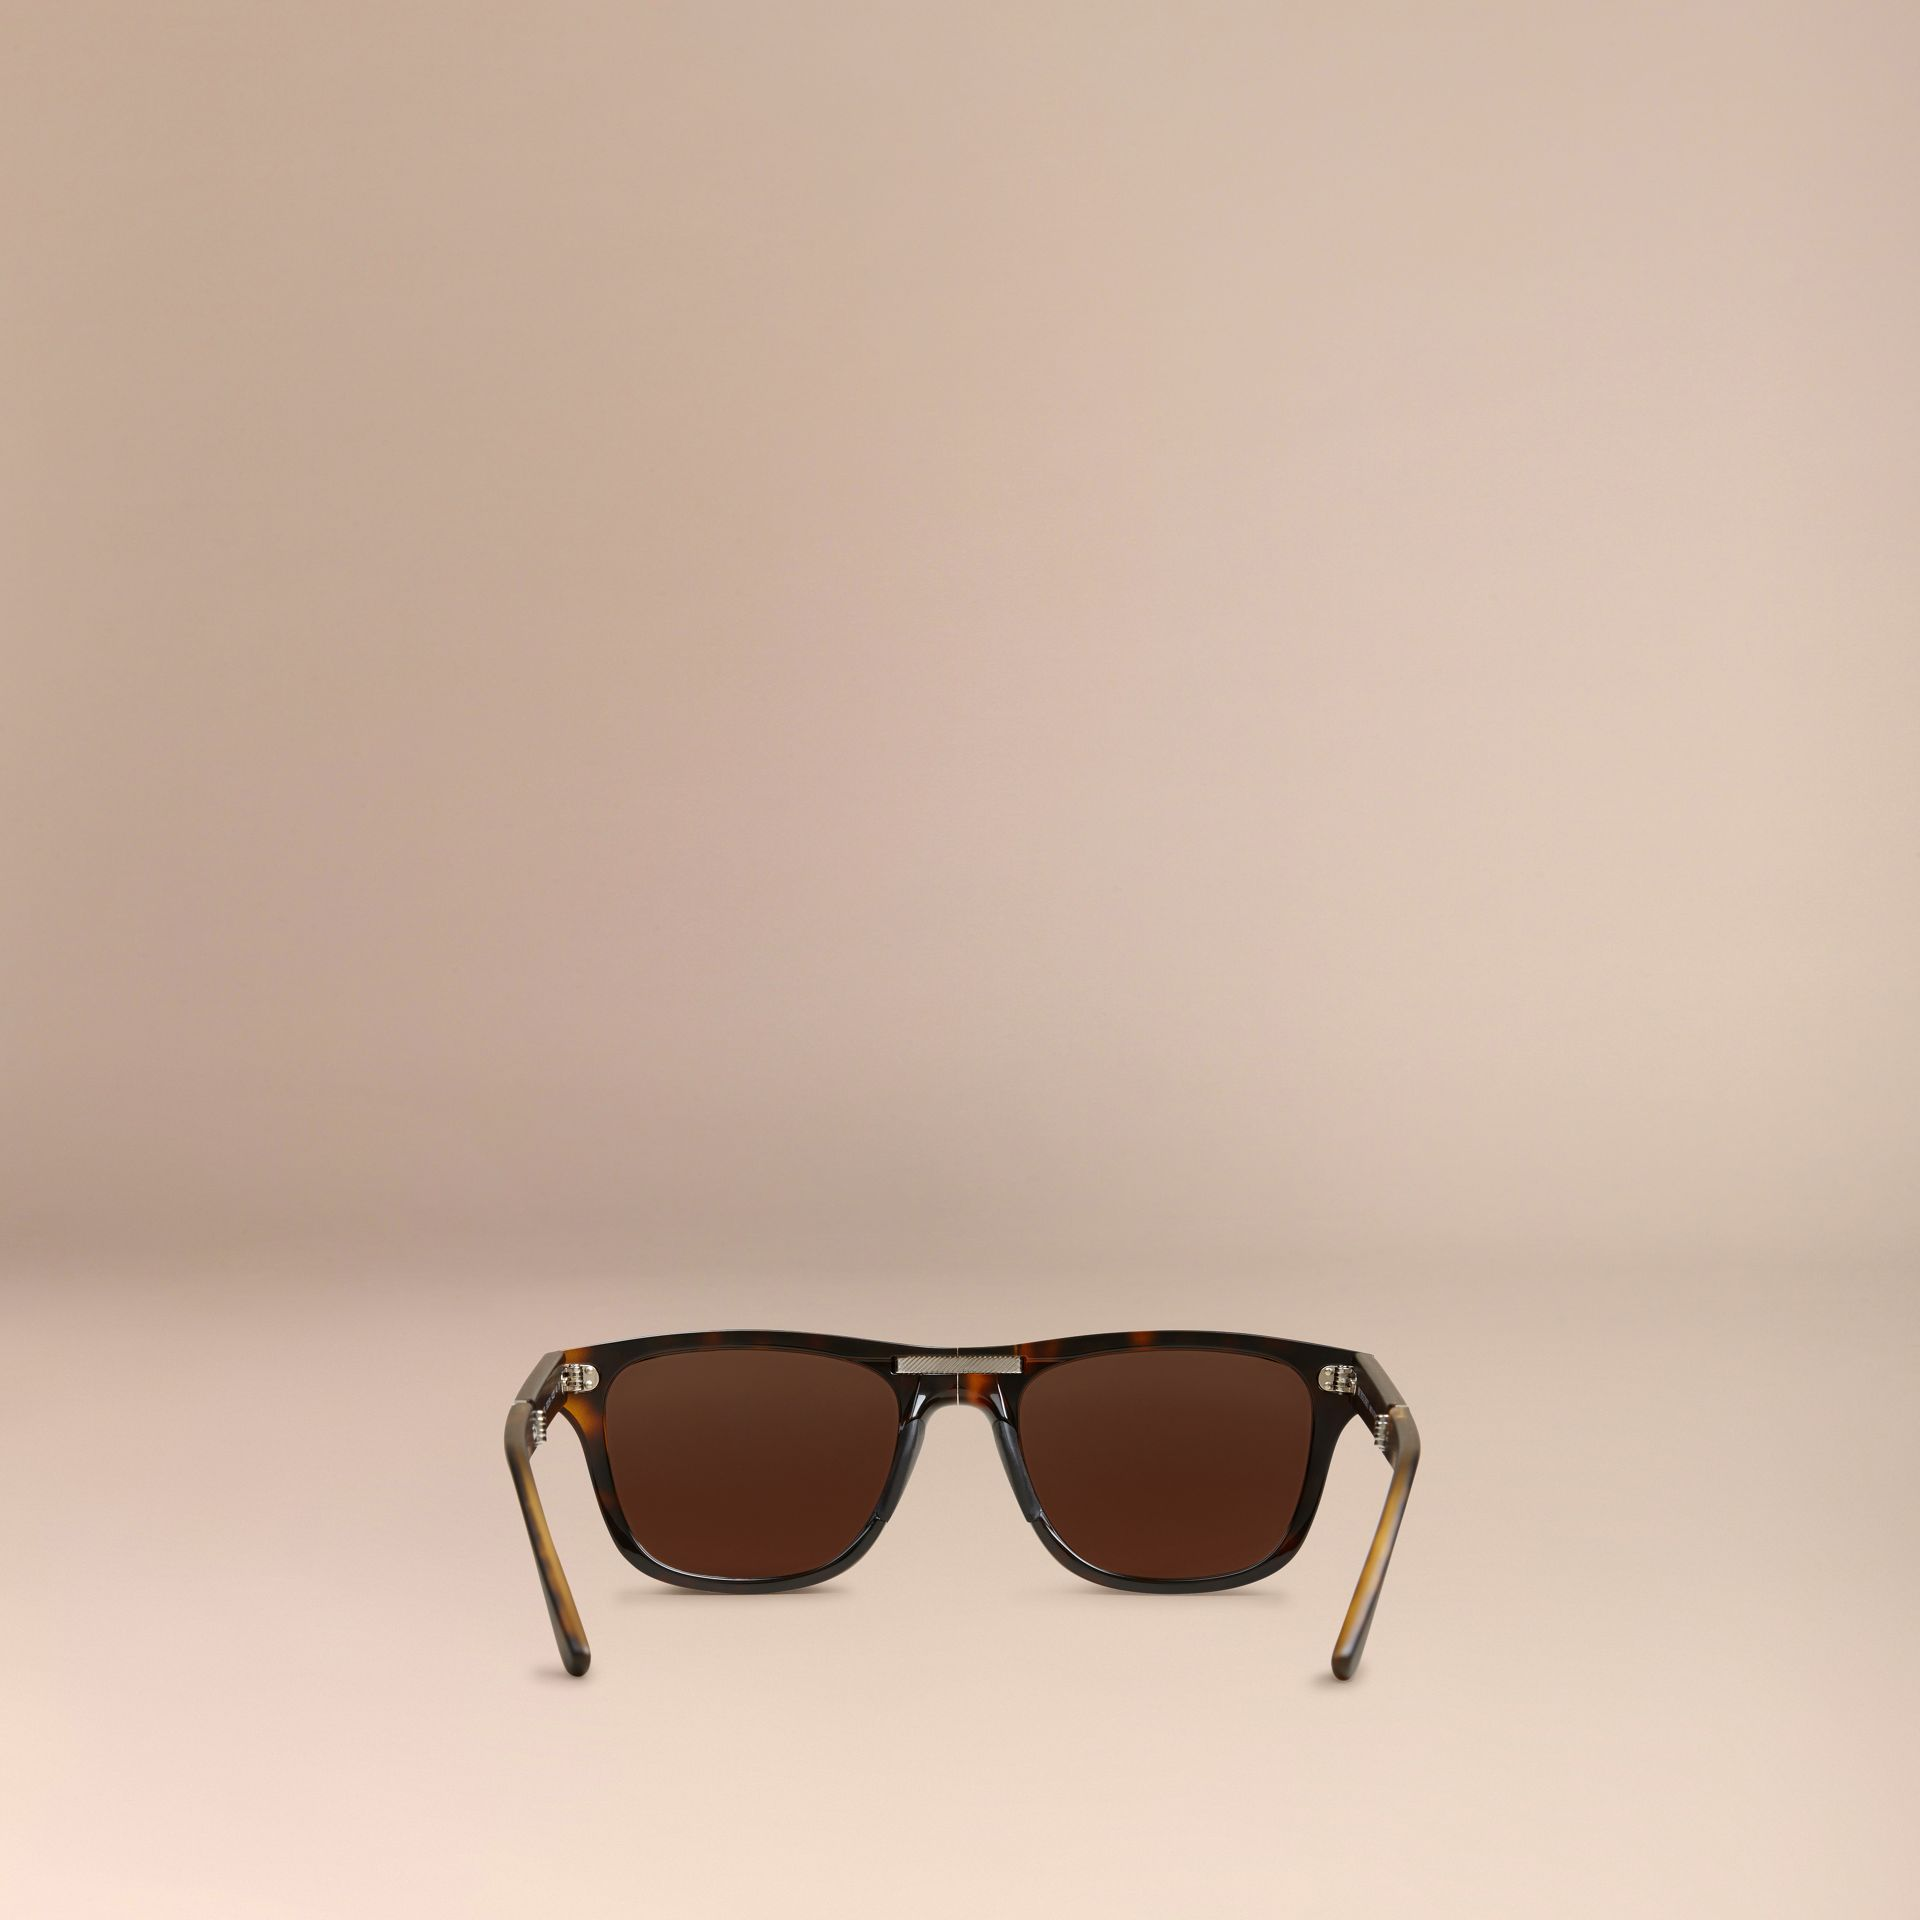 Folding Rectangular Frame Sunglasses in Dark Brown - Men | Burberry United Kingdom - gallery image 4